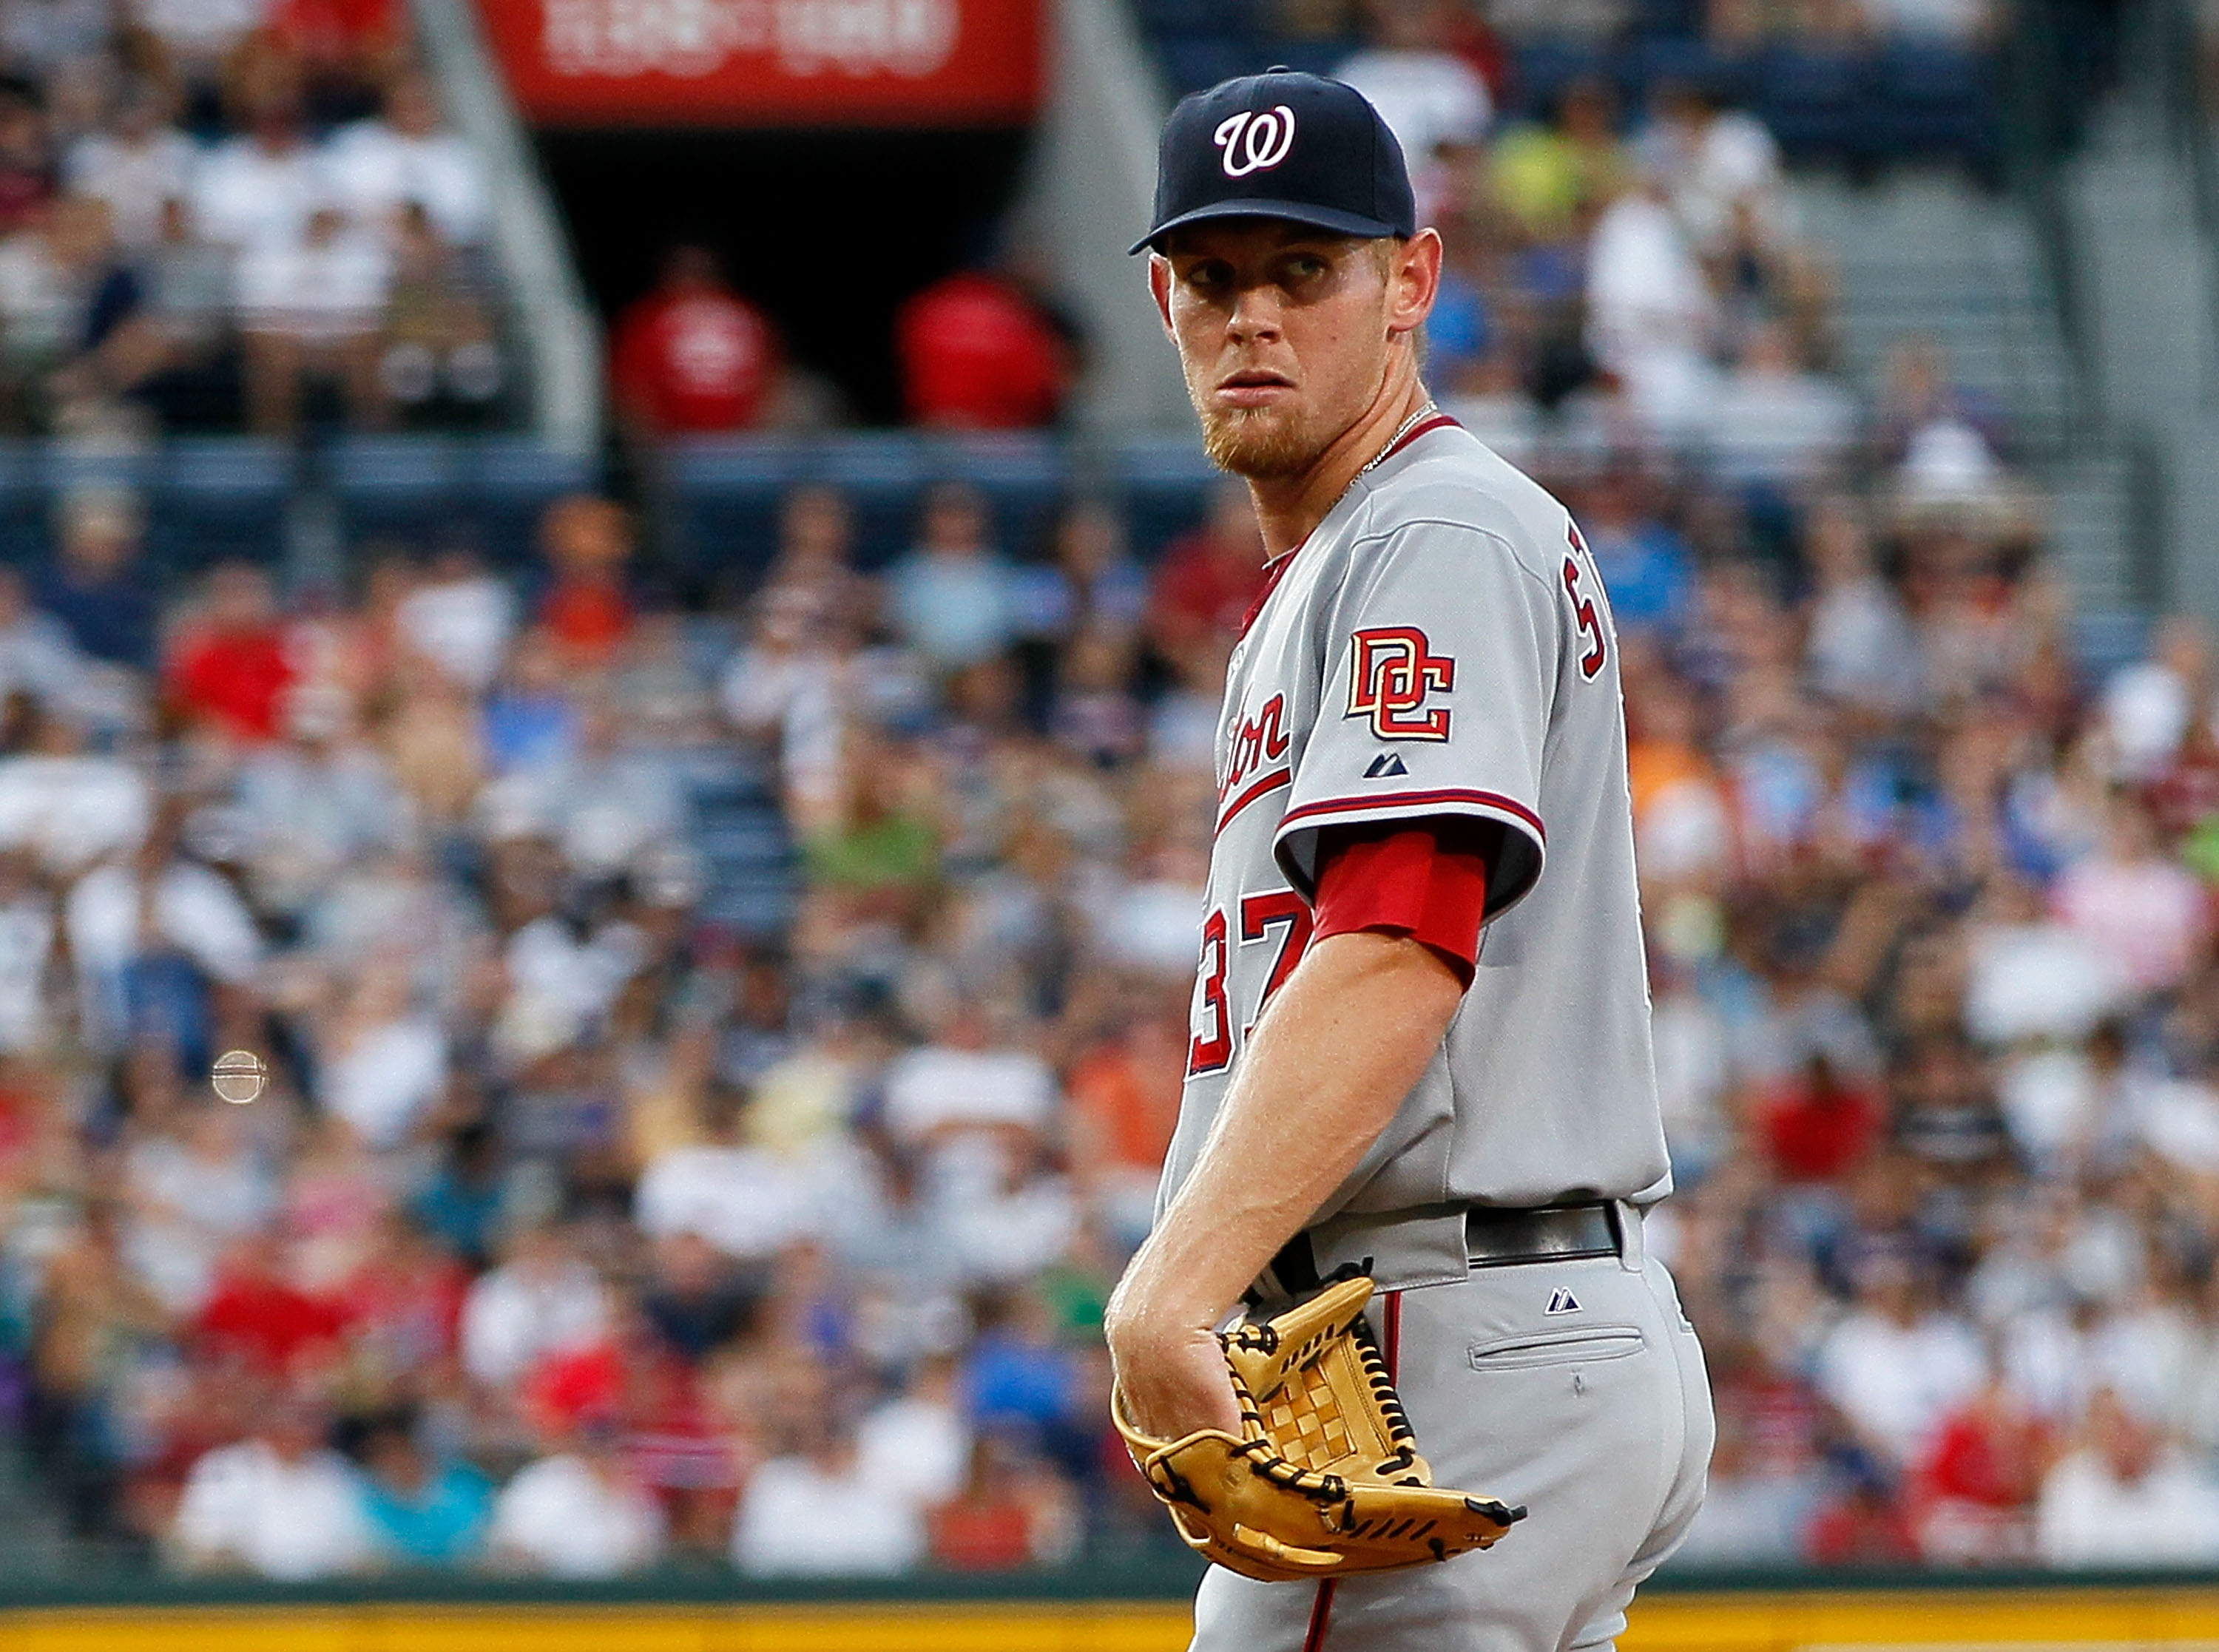 ATLANTA - JUNE 28:  Starting pitcher Stephen Strasburg #37 of the Washington Nationals checks the runner on first base in the second inning against the Atlanta Braves at Turner Field on June 28, 2010 in Atlanta, Georgia.  (Photo by Kevin C. Cox/Getty Imag